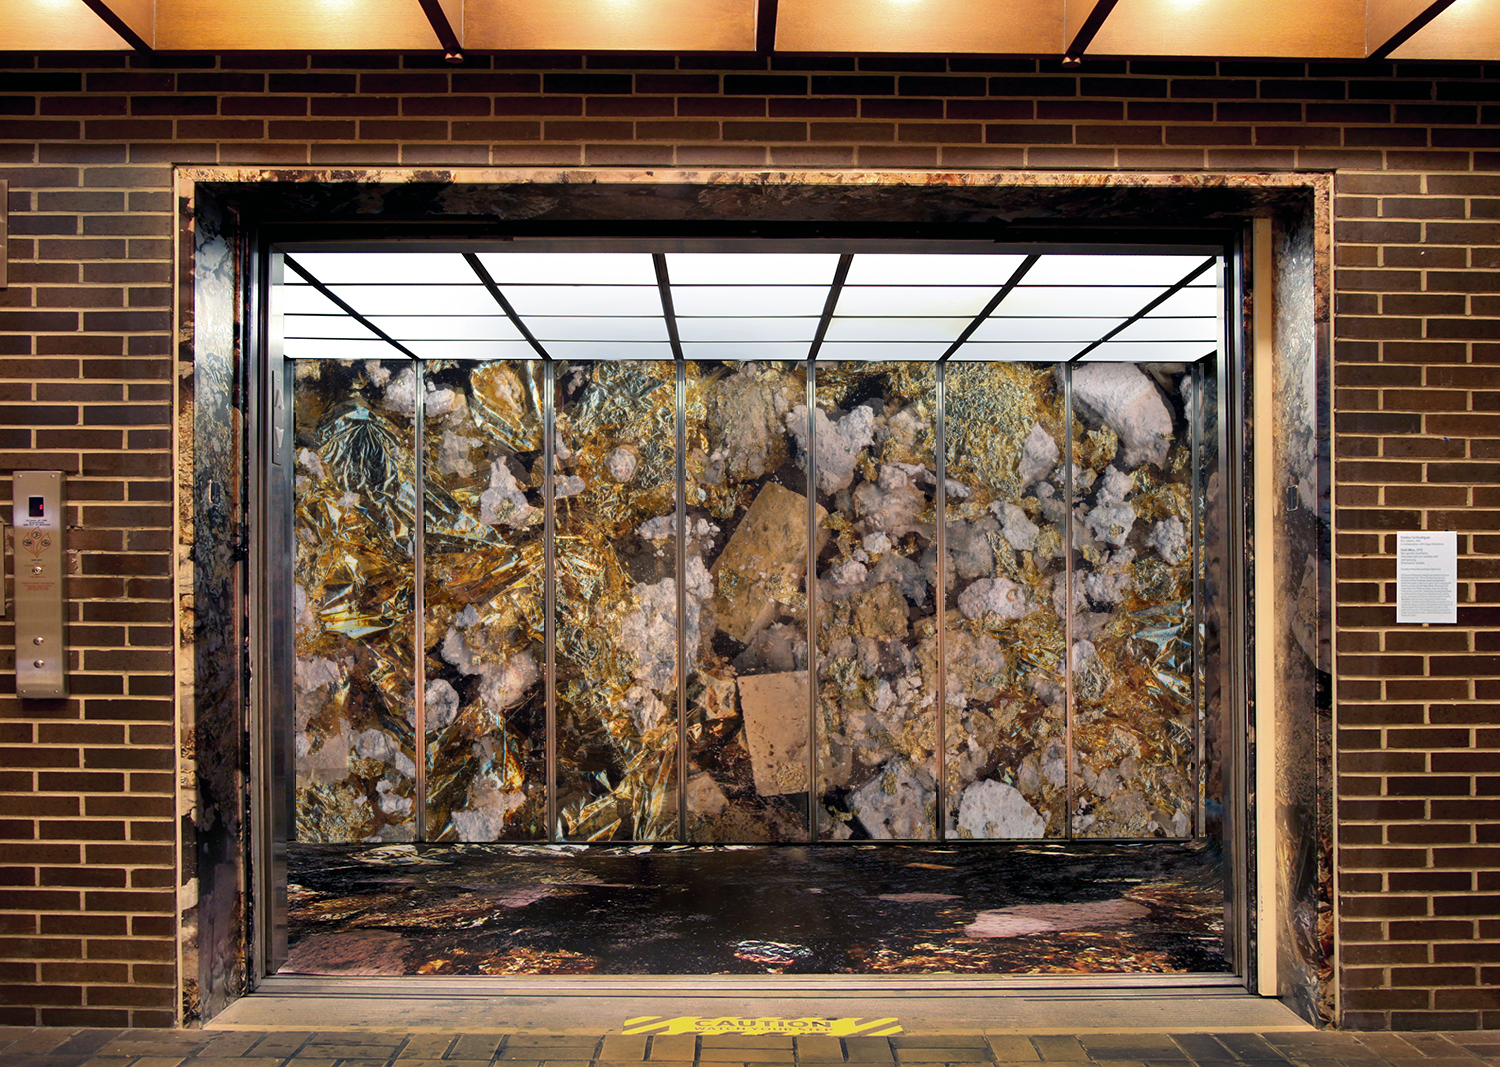 Interior installation view of Gold Mine at the Neuberger Museum of Art,  NY.